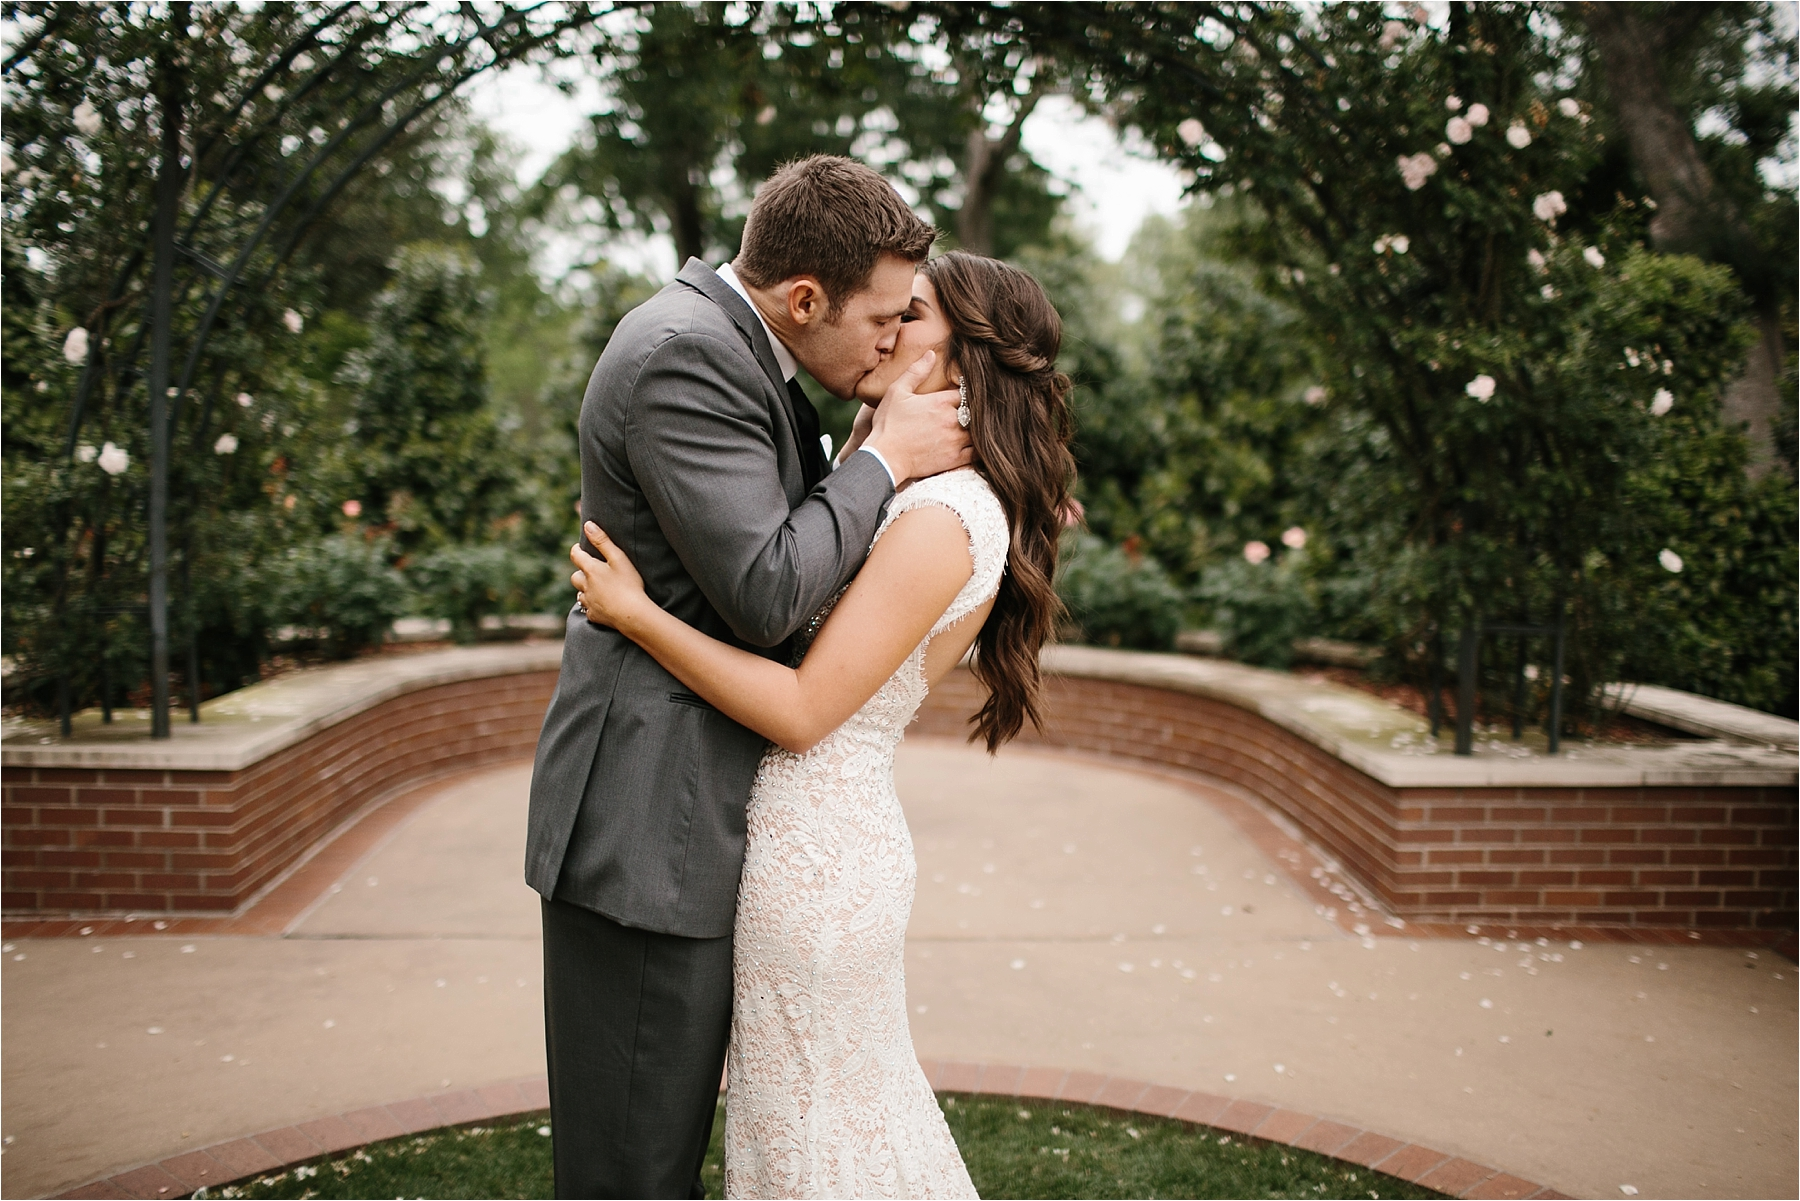 Devyn + Caden __ a Dallas Arboretum Garden Style Wedding by North Texas Wedding Photographer Rachel Meagan Photography __ 054